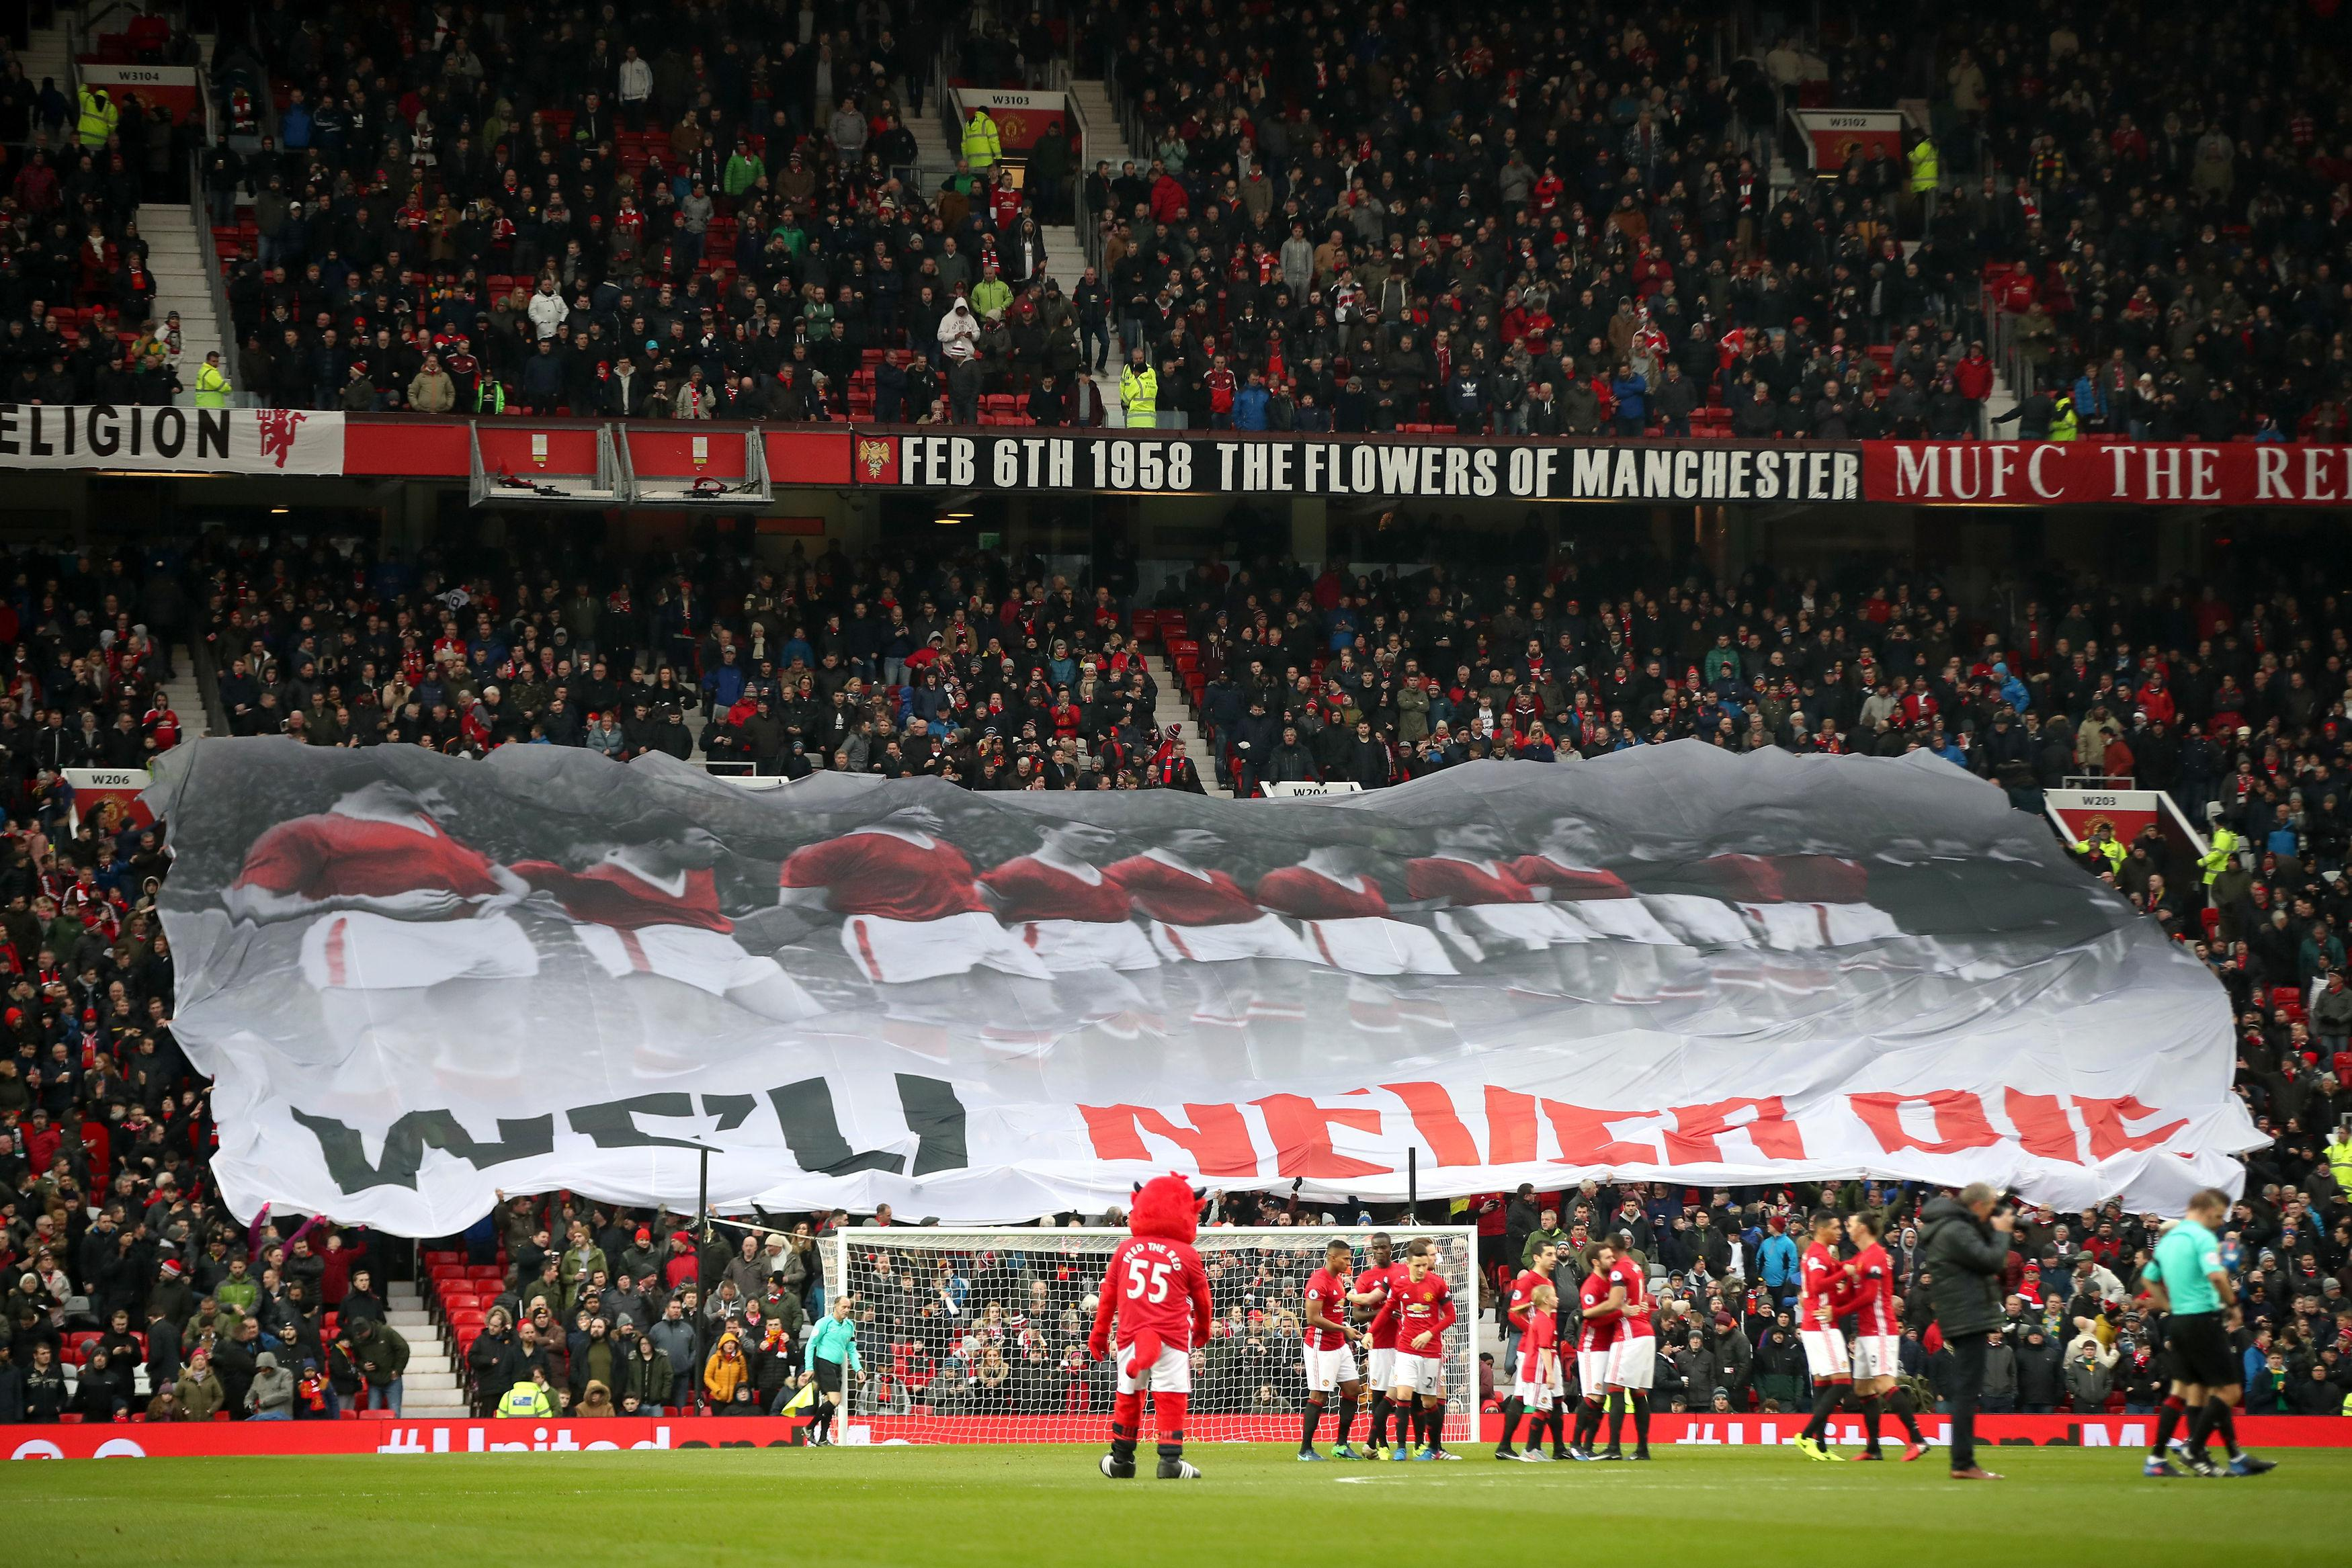 United paid tribute to the 'Flowers of Manchester' ahead of their home match with Huddersfield on Saturday